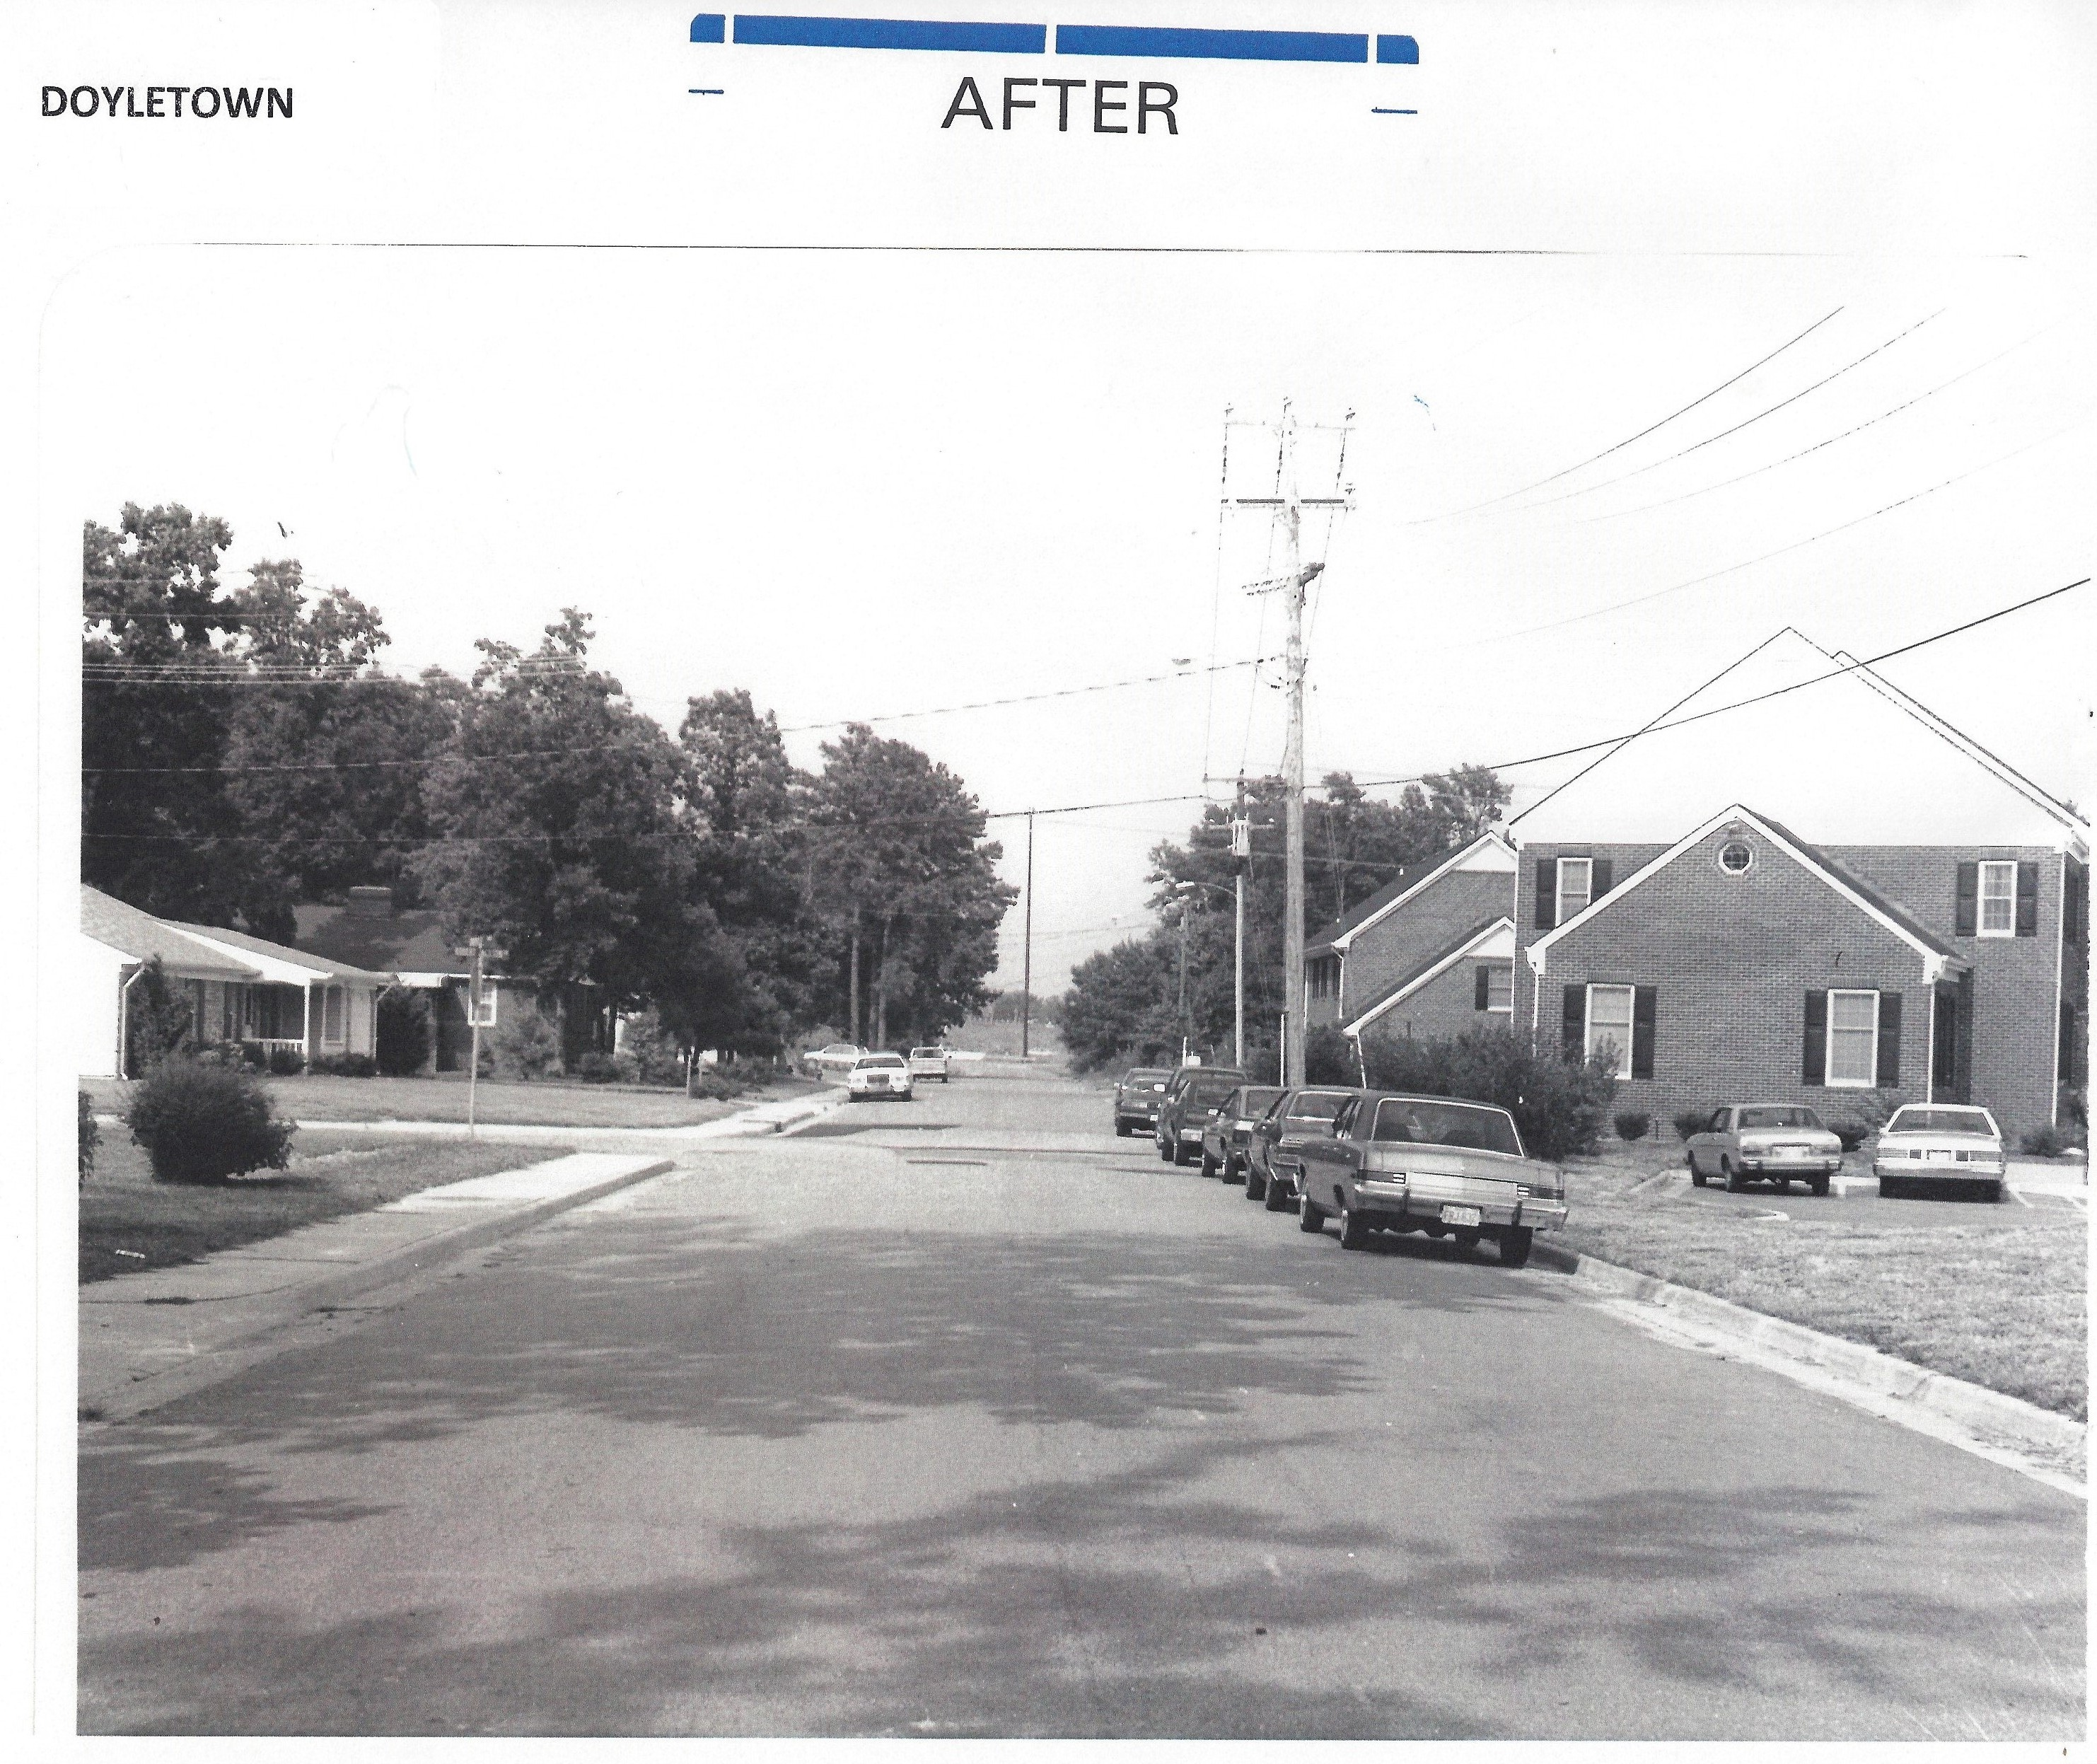 Doyletown After